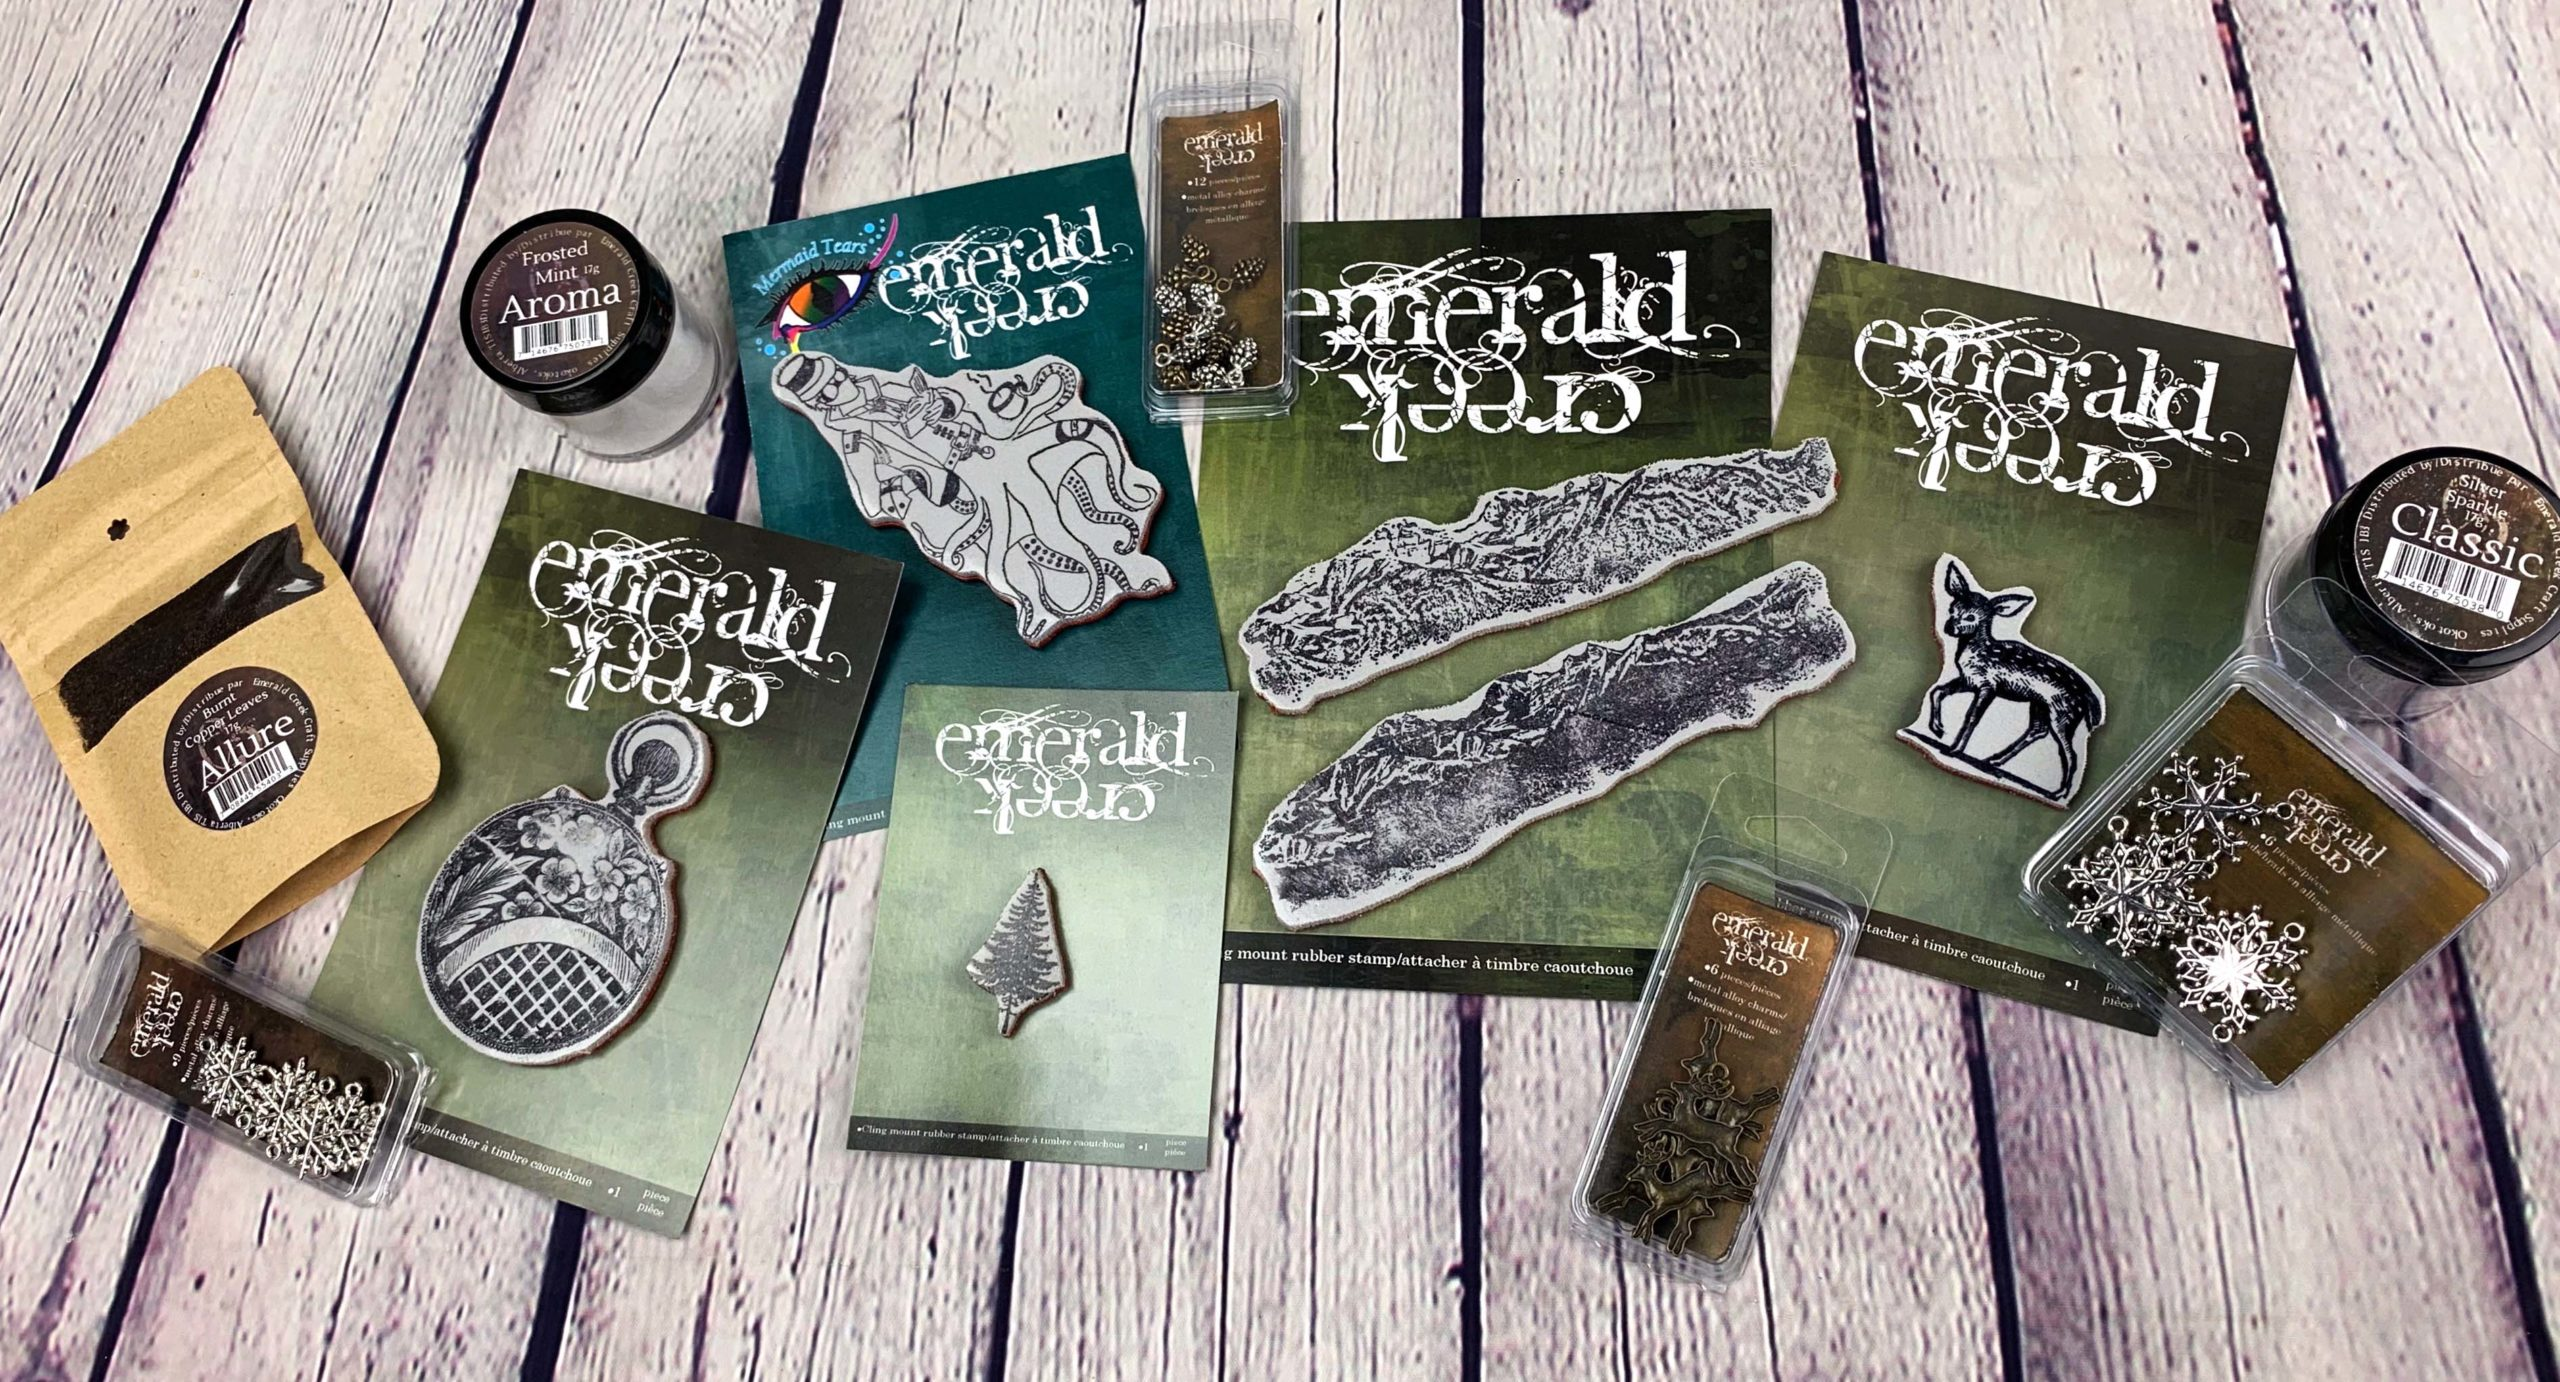 Emerald Creek Craft Supplies Prize Package